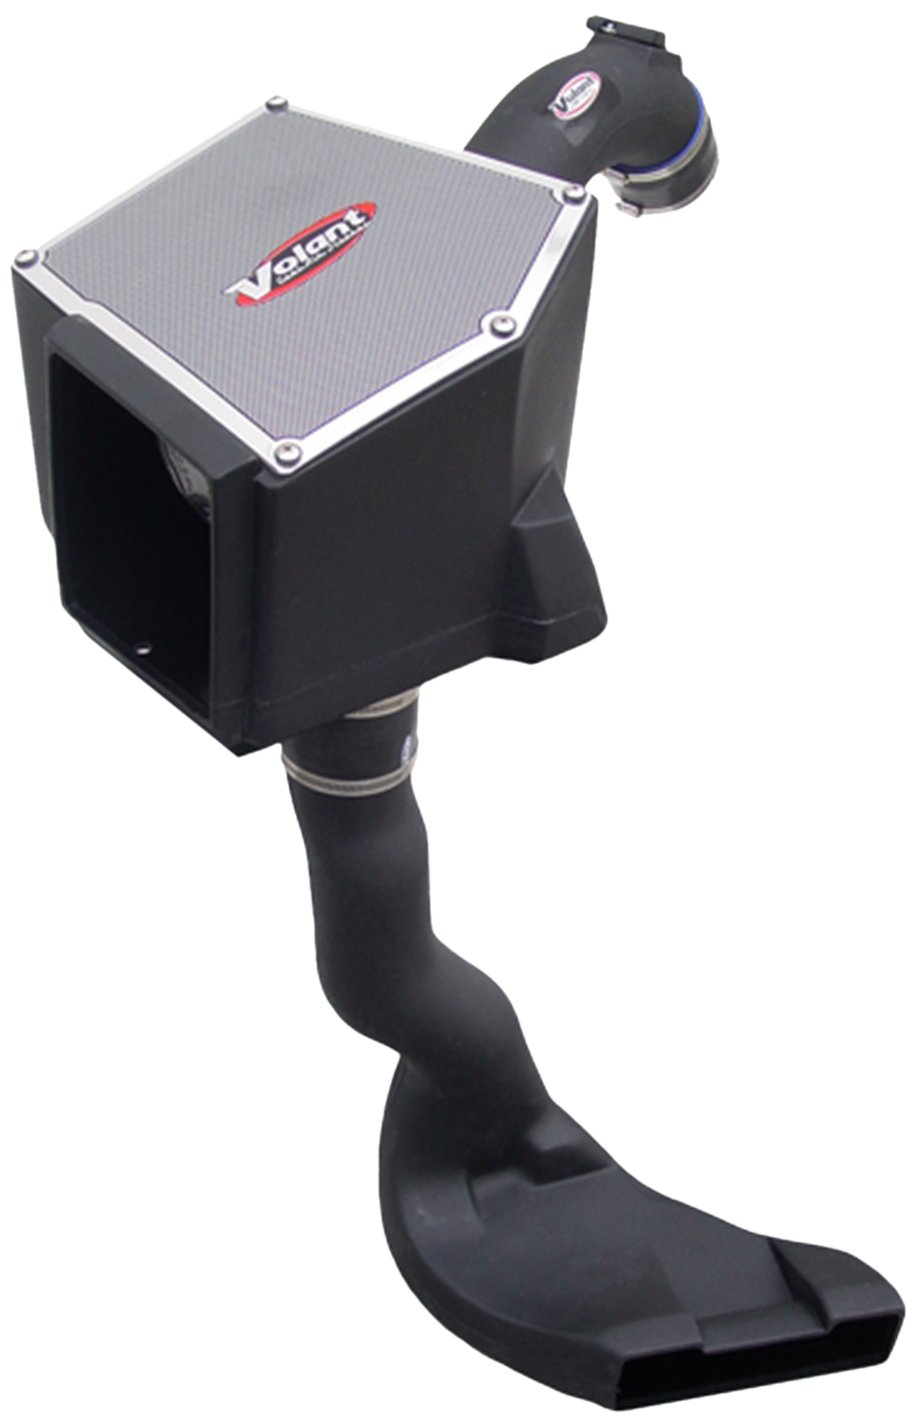 Volant 3506061 Cold Air Intake with Ram Air Scoop Combo Kit with Powercore Filter